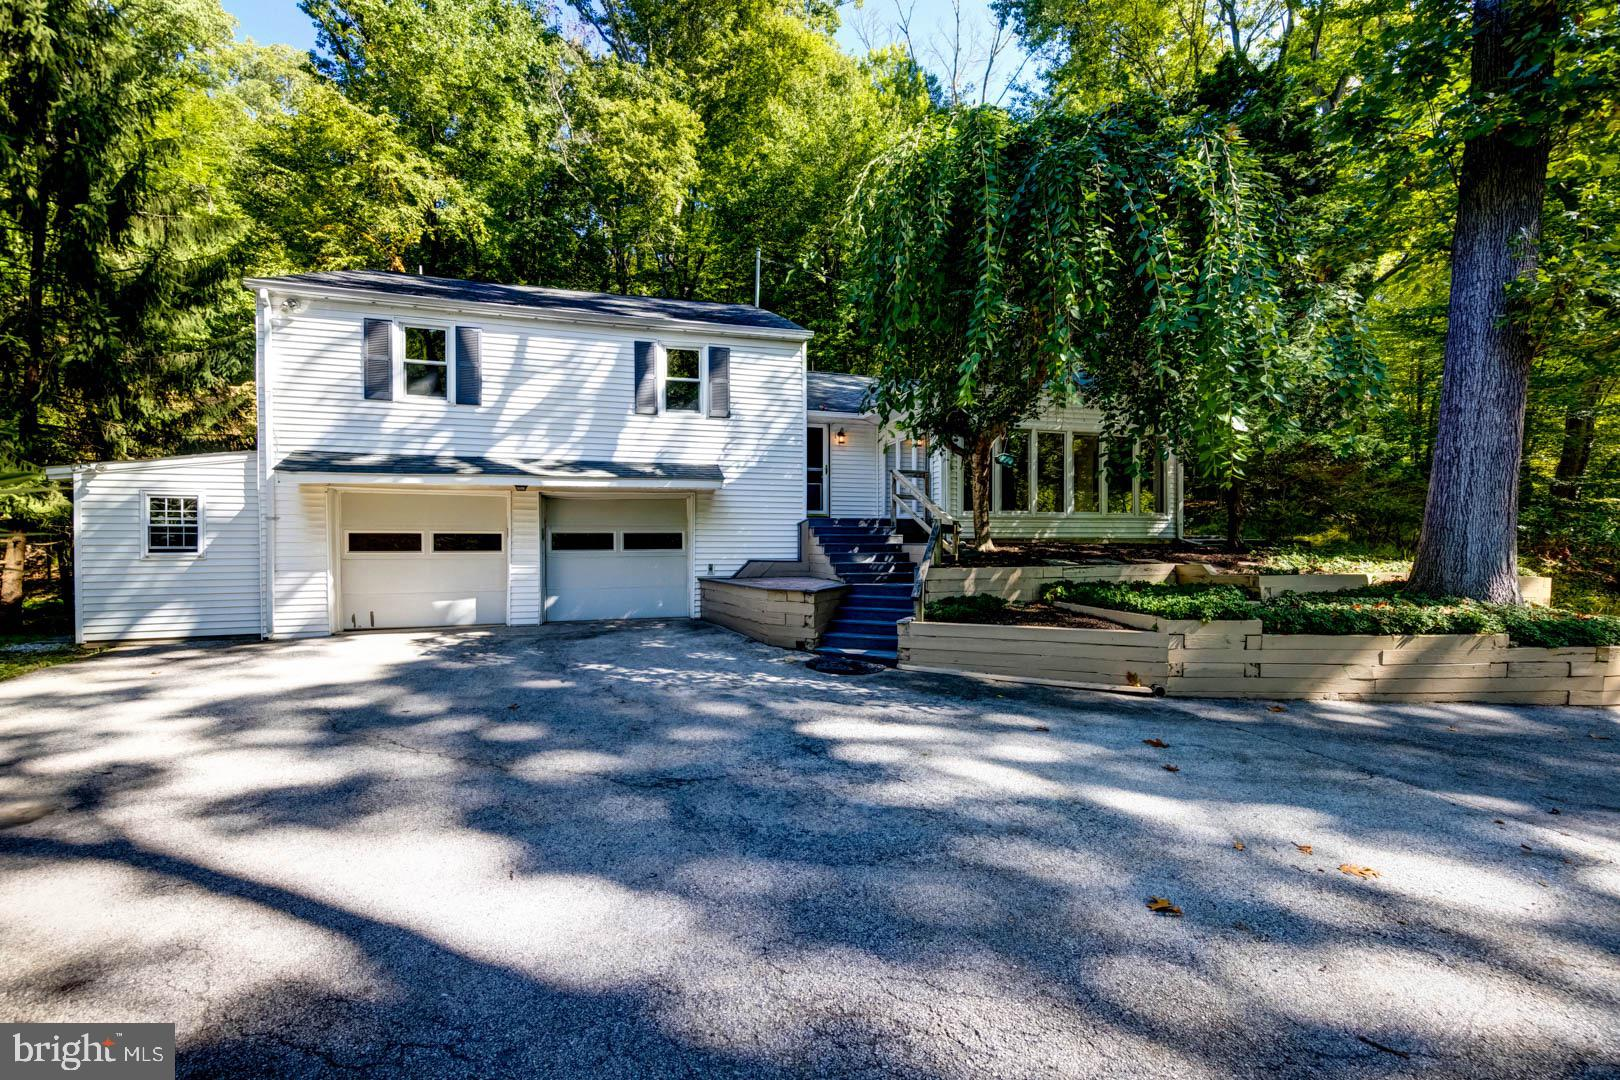 Well-maintained, move-in ready split level home on a quiet cul-de-sac offering 3 bedrooms, 2.5 baths, and a 2-car garage on two secluded parcels totaling 1.55 acres adjacent to Crabby Creek Park, 48 acres of open space owned by Tredyffrin Township.  A composite landing off the front steps leads to a welcoming foyer with hall closet. The main level includes: spacious living room with hardwood floors and a gas fireplace with brick surround; dining room with crown molding, chair rail, and door to the rear patio; eat-in kitchen with tasteful wood cabinetry, white appliances, solid surface countertop, and tile backsplash. Off the living room is gorgeous glass-enclosed sunroom with vaulted ceiling, skylights, and a wall of casement windows providing wonderful views of the scenic environs. The primary bedroom has hardwood floors, two closets, and a full bathroom with tile floor.  Two secondary bedrooms with ample closet space and hardwood floors and a full hall bathroom complete the second level. The lower level, which is still above grade, has a family room, half bathroom, storage closet, and access to the two-car garage.  The unfinished basement is accessed through the garage and offers tremendous storage space.  Outside you'll find several hardscaped patios, a storage shed adjacent to the garage, and lots of mature specimen plantings.  This wonderful property is located minutes from shopping, dining, parks, major commuter routes, the Septa Regional Rail, the Village of Berwyn, and is part of the top rated Tredyffrin-Easttown School District.